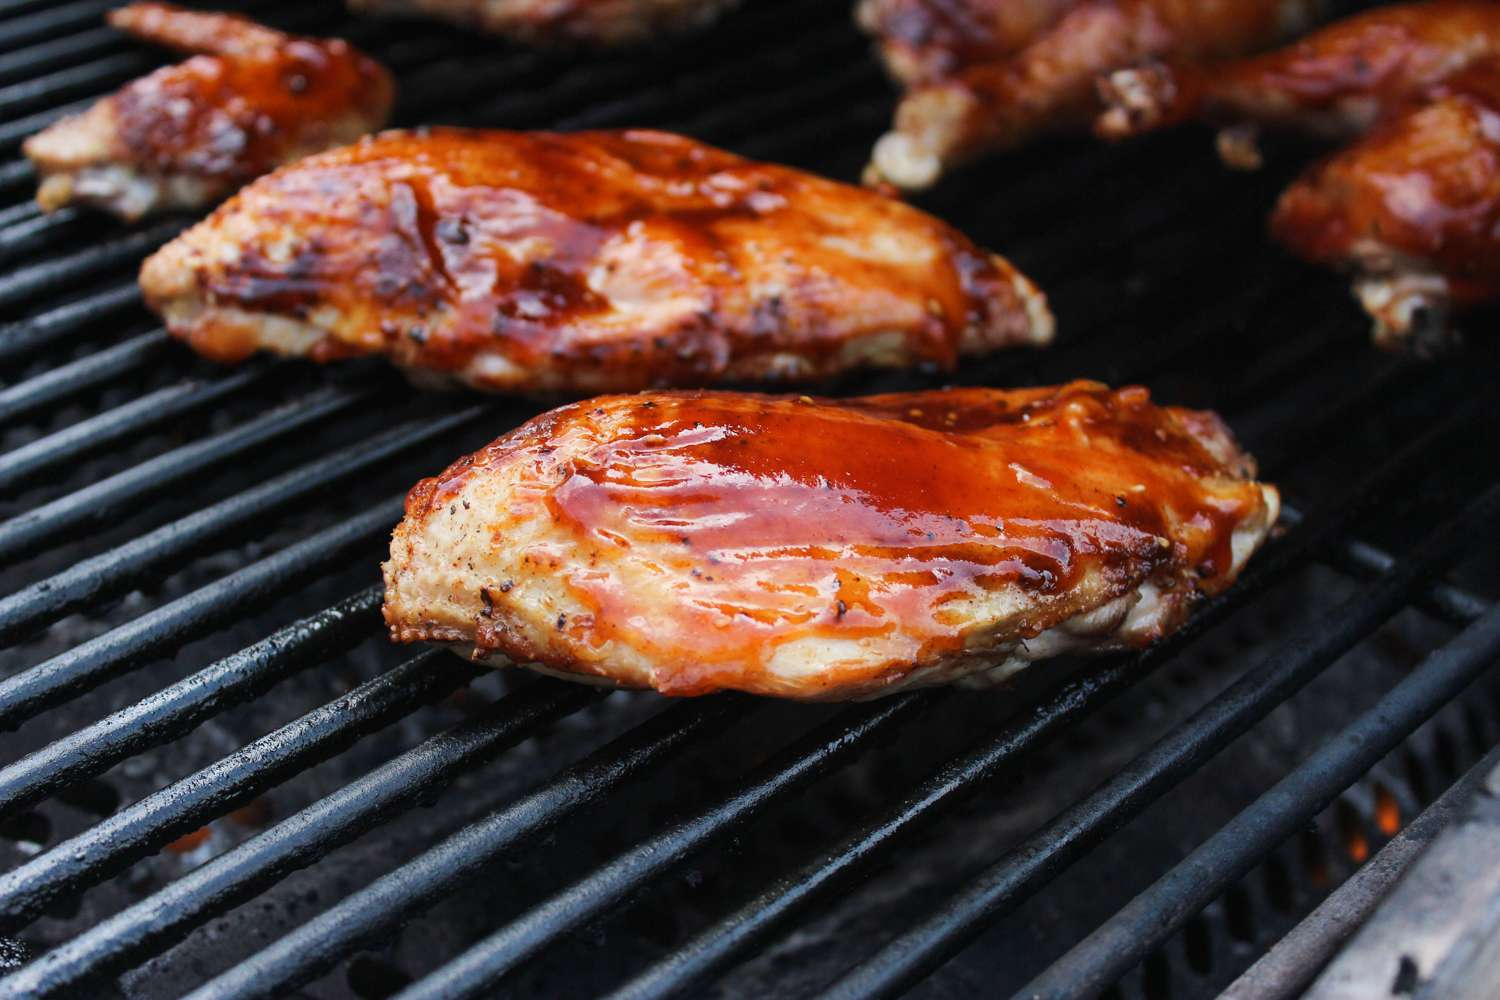 Cook and baste with barbecue sauce